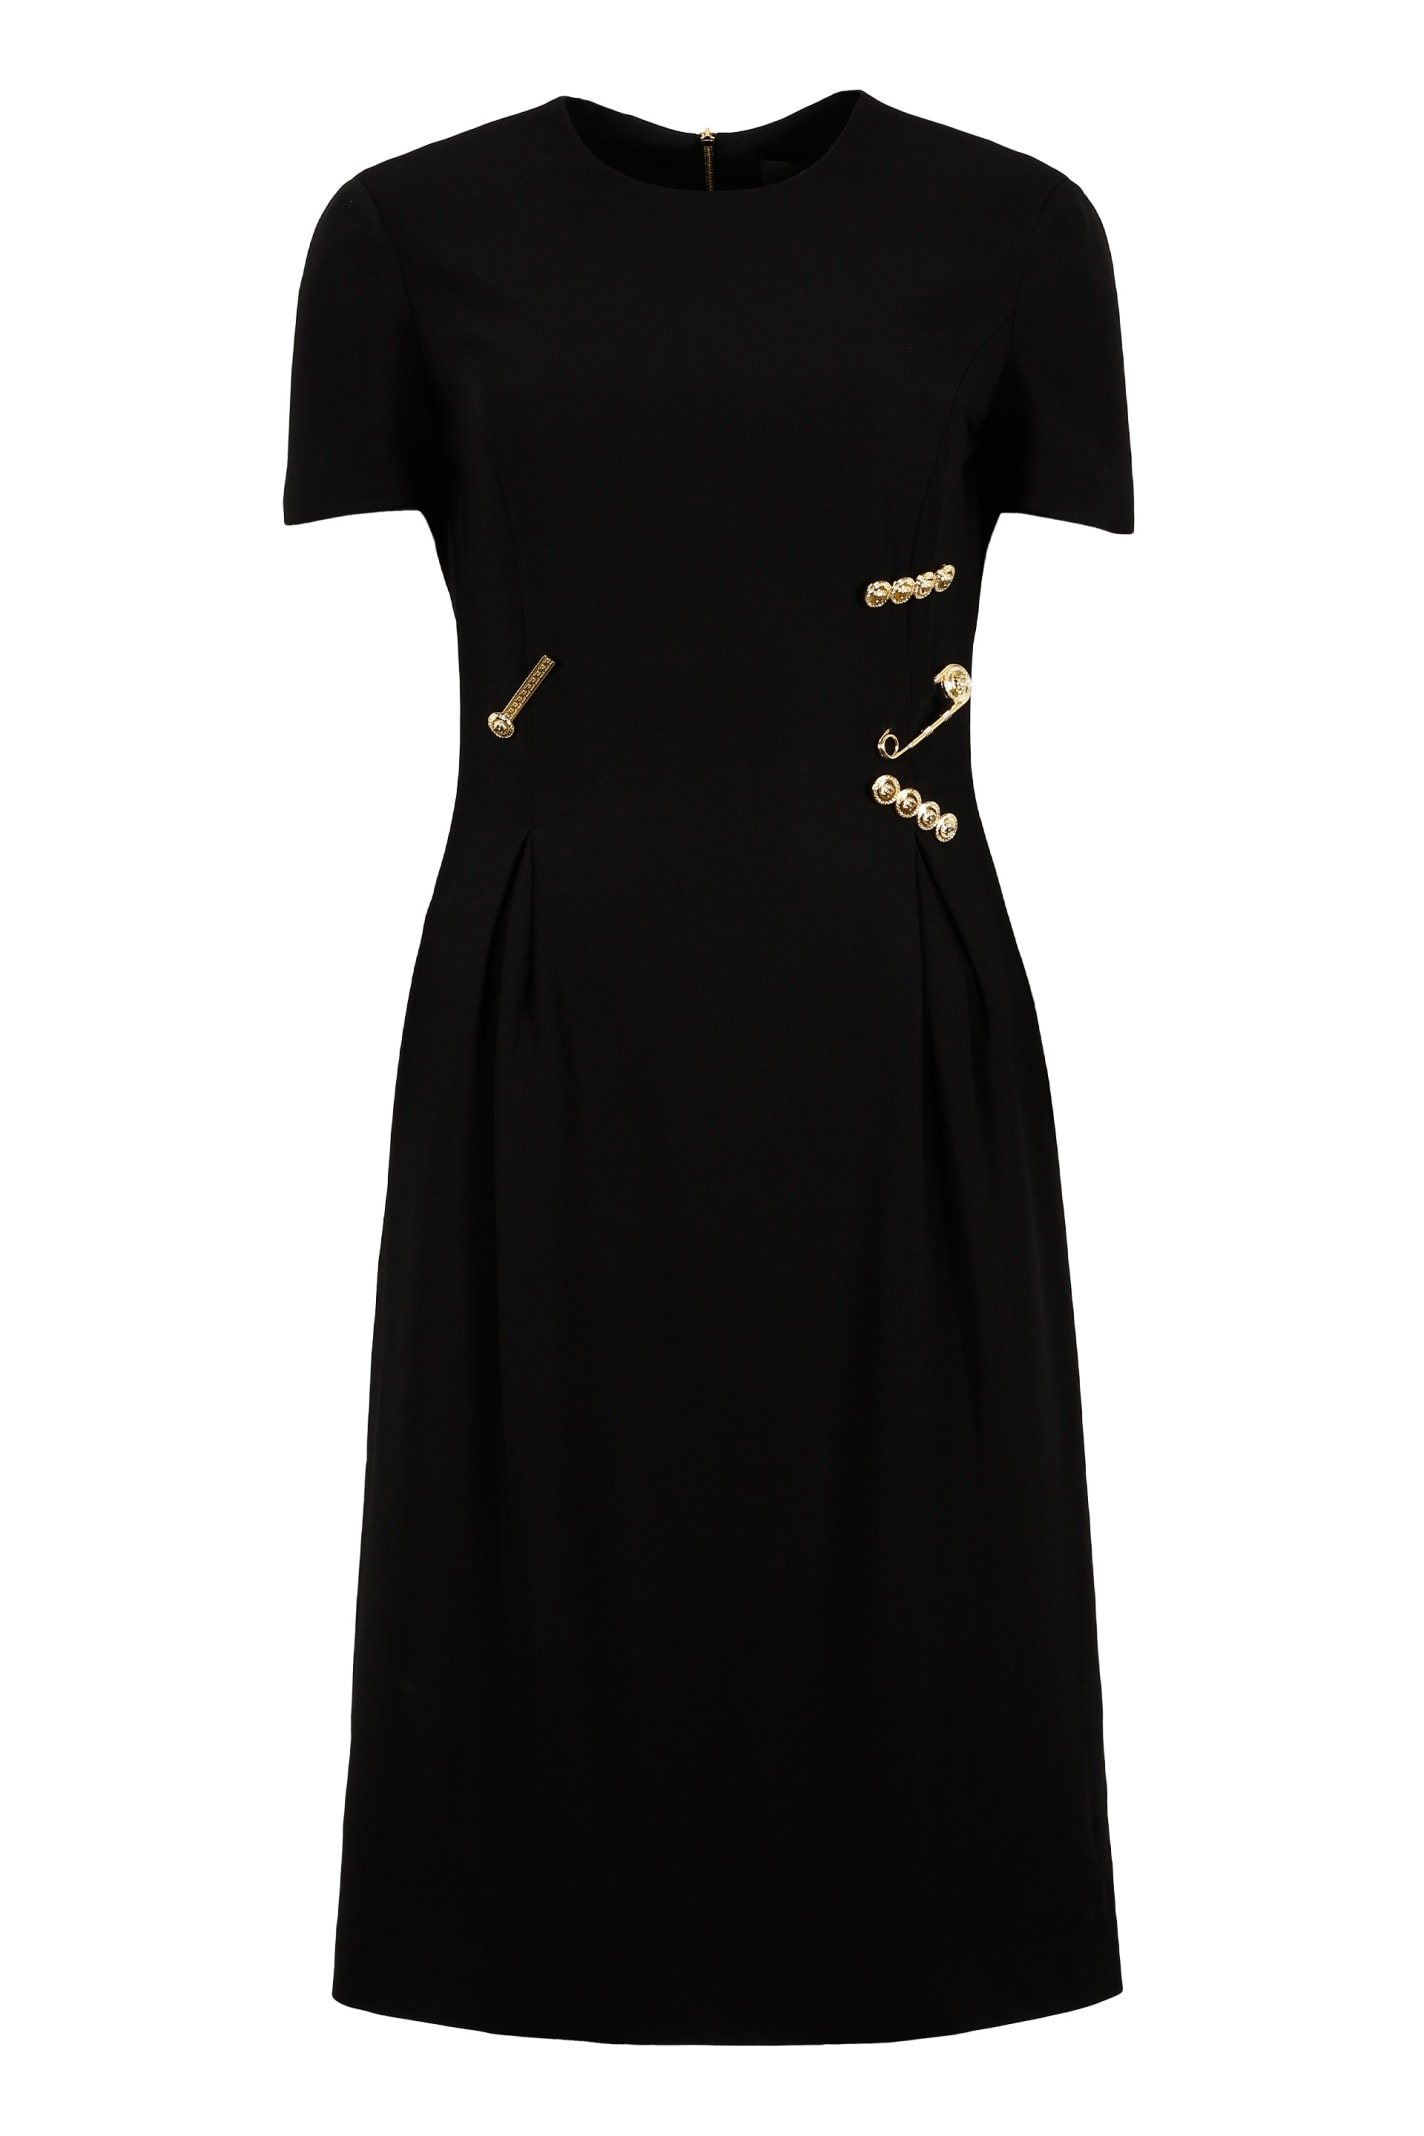 Versace Decorative Safety Pins Sheath Dress